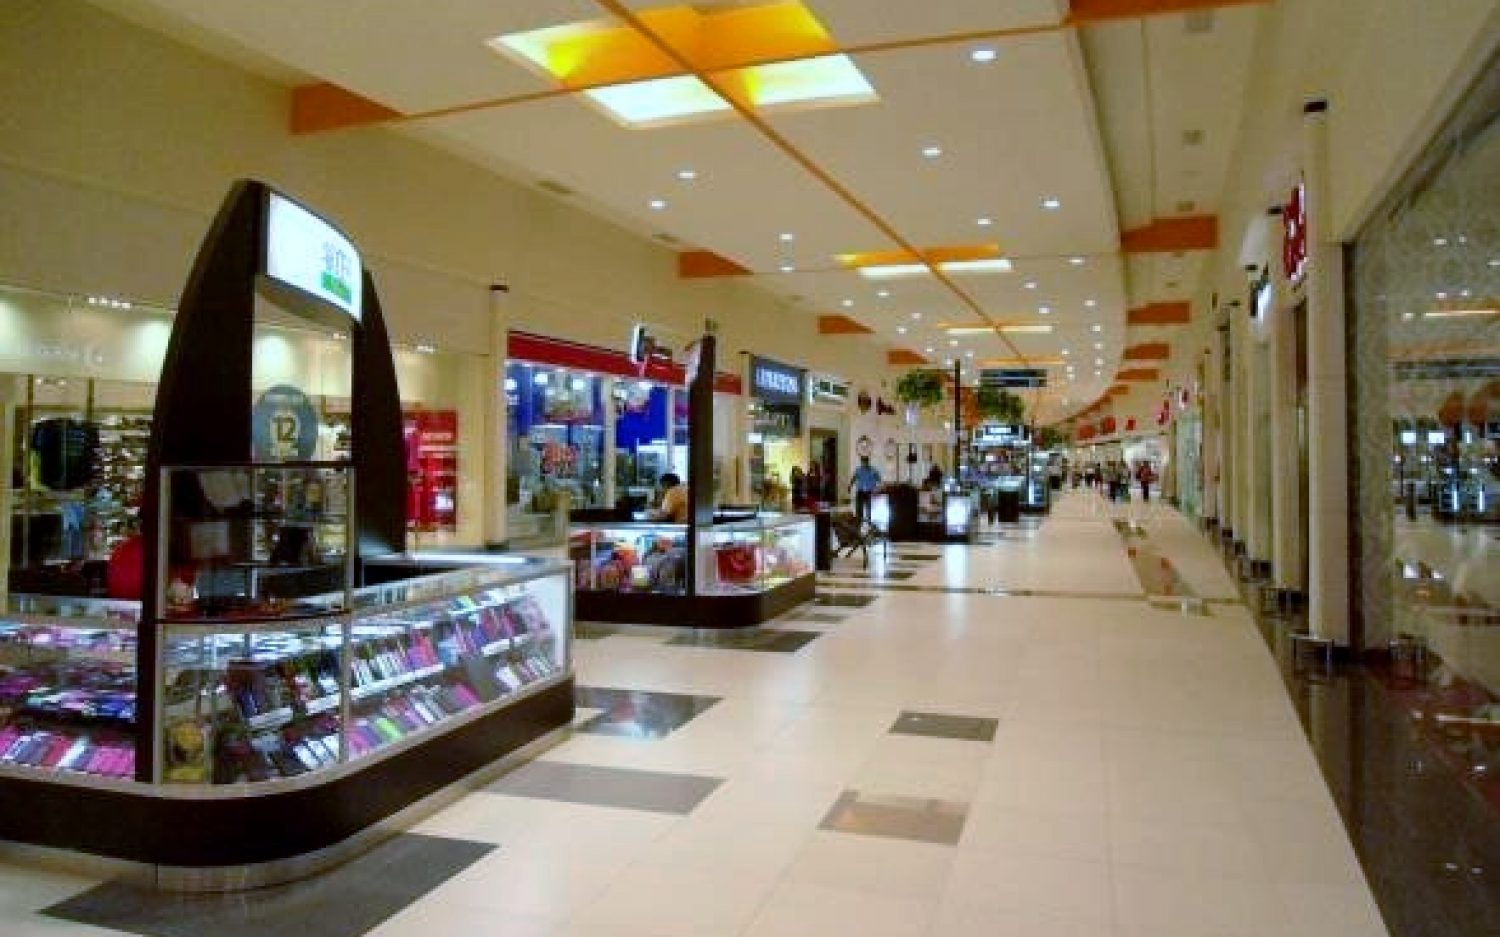 Co-Plaza Sendero Villahermosa (44)